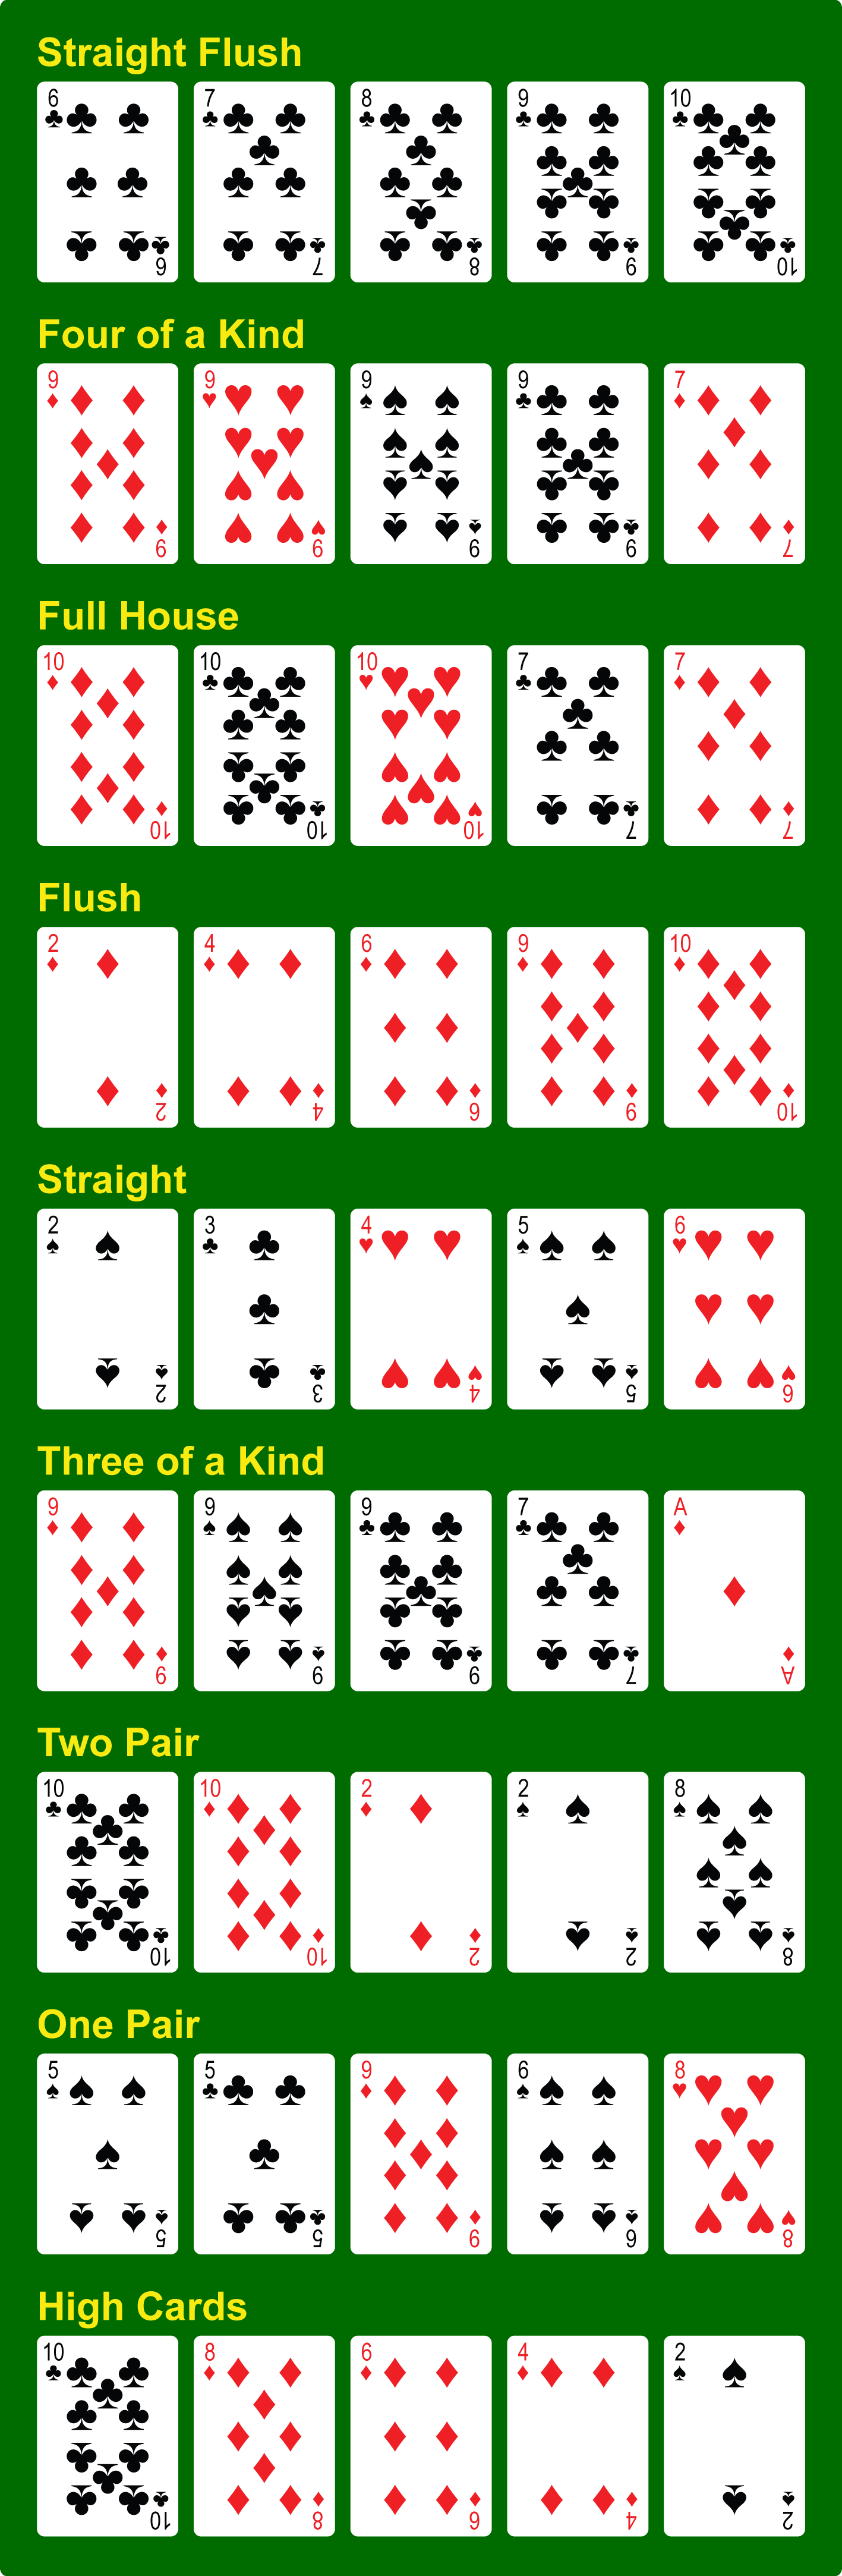 What is considered a soft 17 in blackjack